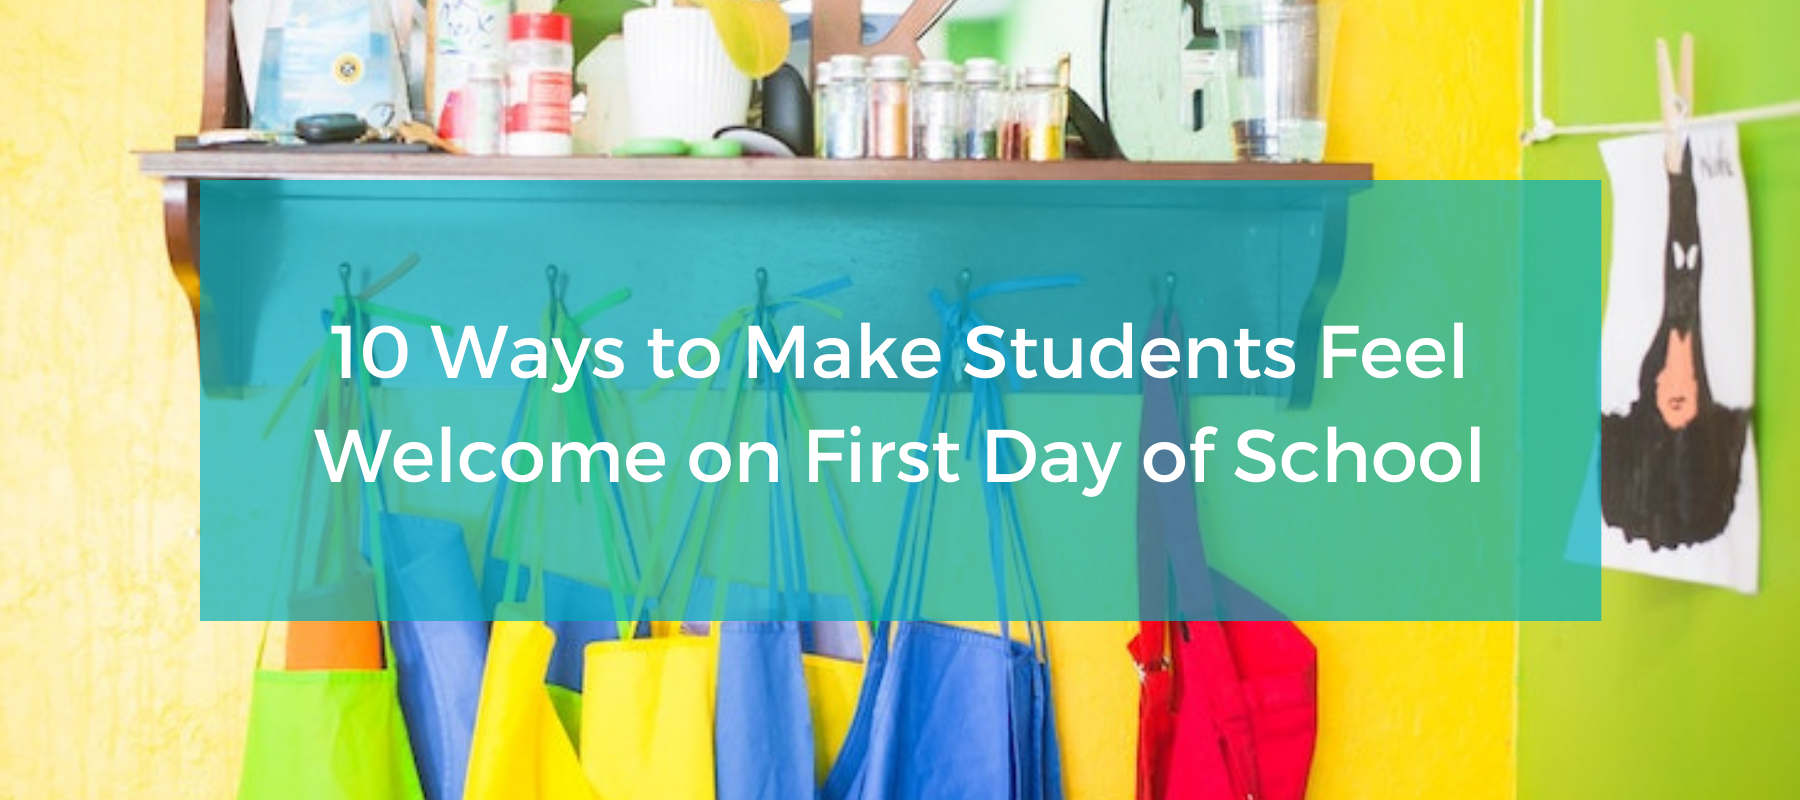 10 Ways to Make Students Feel Welcome on First Day of School Featured Image